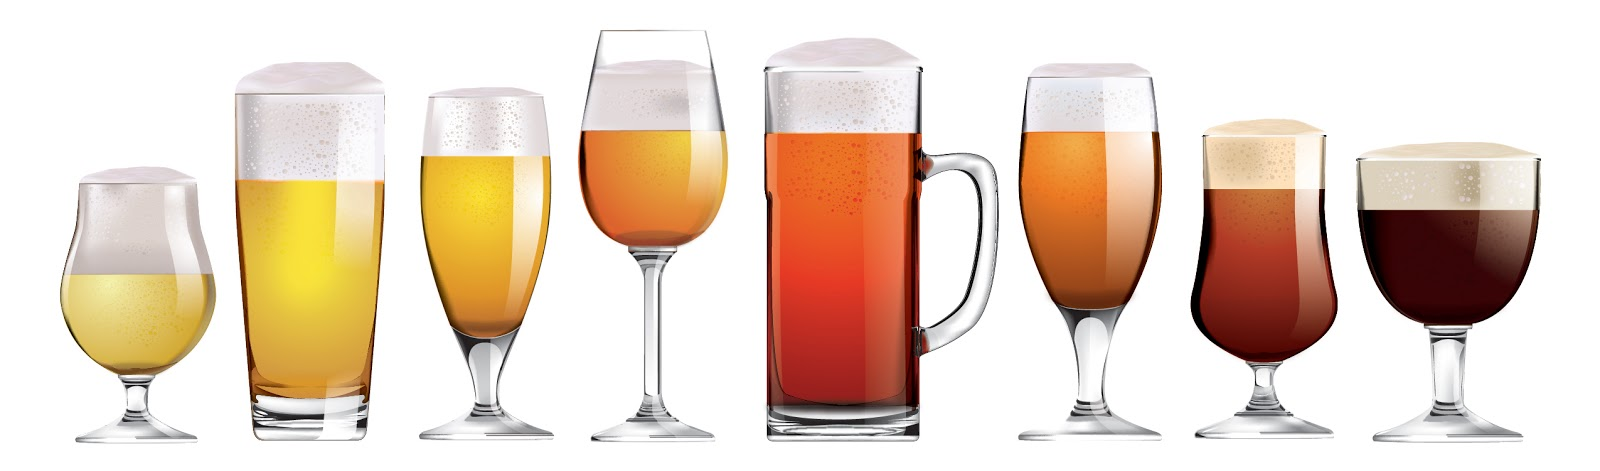 Beer Glasses For Different Beers